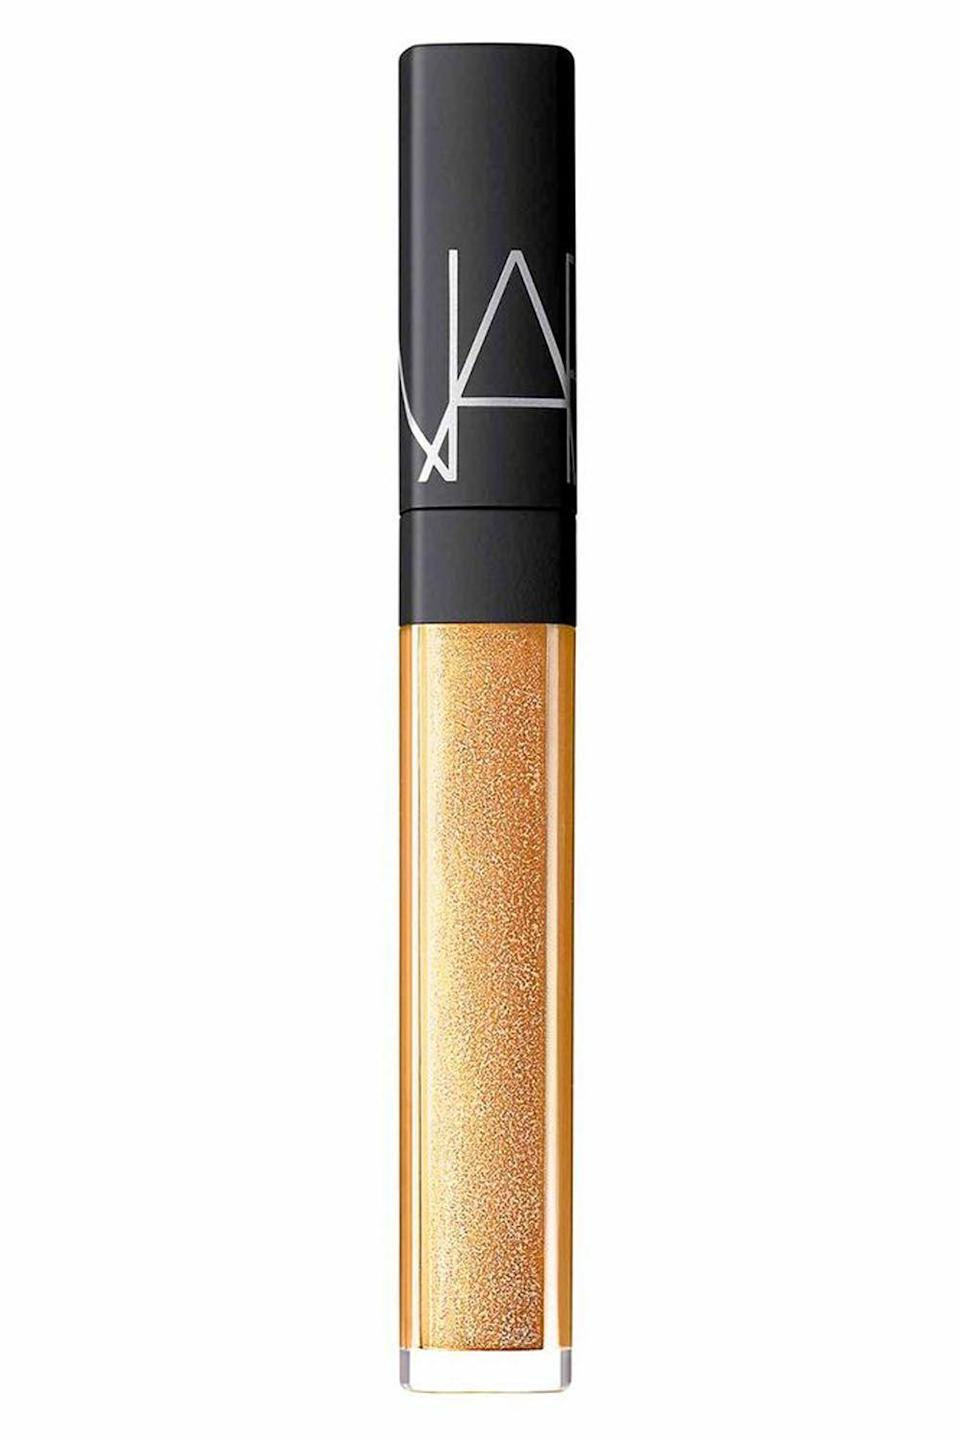 """<p><strong>NARS</strong></p><p>bloomingdales.com</p><p><strong>$26.00</strong></p><p><a href=""""https://go.redirectingat.com?id=74968X1596630&url=https%3A%2F%2Fwww.bloomingdales.com%2Fshop%2Fproduct%2Fnars-multi-use-gloss%3FID%3D3259745&sref=https%3A%2F%2Fwww.cosmopolitan.com%2Fstyle-beauty%2Fbeauty%2Fg12447782%2Fbest-lip-gloss%2F"""" rel=""""nofollow noopener"""" target=""""_blank"""" data-ylk=""""slk:Shop Now"""" class=""""link rapid-noclick-resp"""">Shop Now</a></p><p>I've been suuuper into the allover glossy look lately, thanks to this pick from Nars. At first glance, it looks like any other lip gloss, but it's so much more than just that. The creamy formula (which is filled with hydrating coconut oil and <a href=""""https://www.cosmopolitan.com/style-beauty/beauty/a27609307/vitamin-e-for-skin-benefits-products/"""" rel=""""nofollow noopener"""" target=""""_blank"""" data-ylk=""""slk:vitamin E"""" class=""""link rapid-noclick-resp"""">vitamin E</a>) <strong>can also be used on your cheeks and eyes</strong>, giving you a shimmery, glossy, and, more importantly, non-sticky finish.<br></p>"""